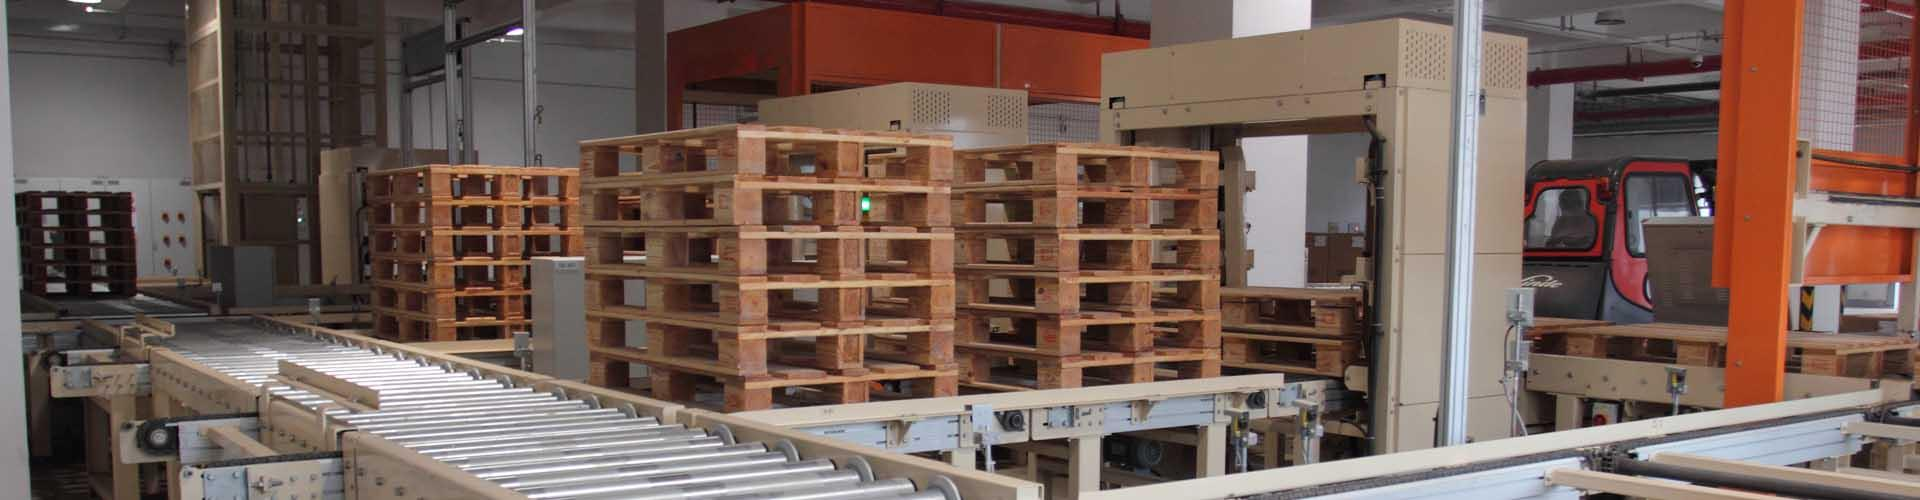 Pallet Stackers & Dispensers